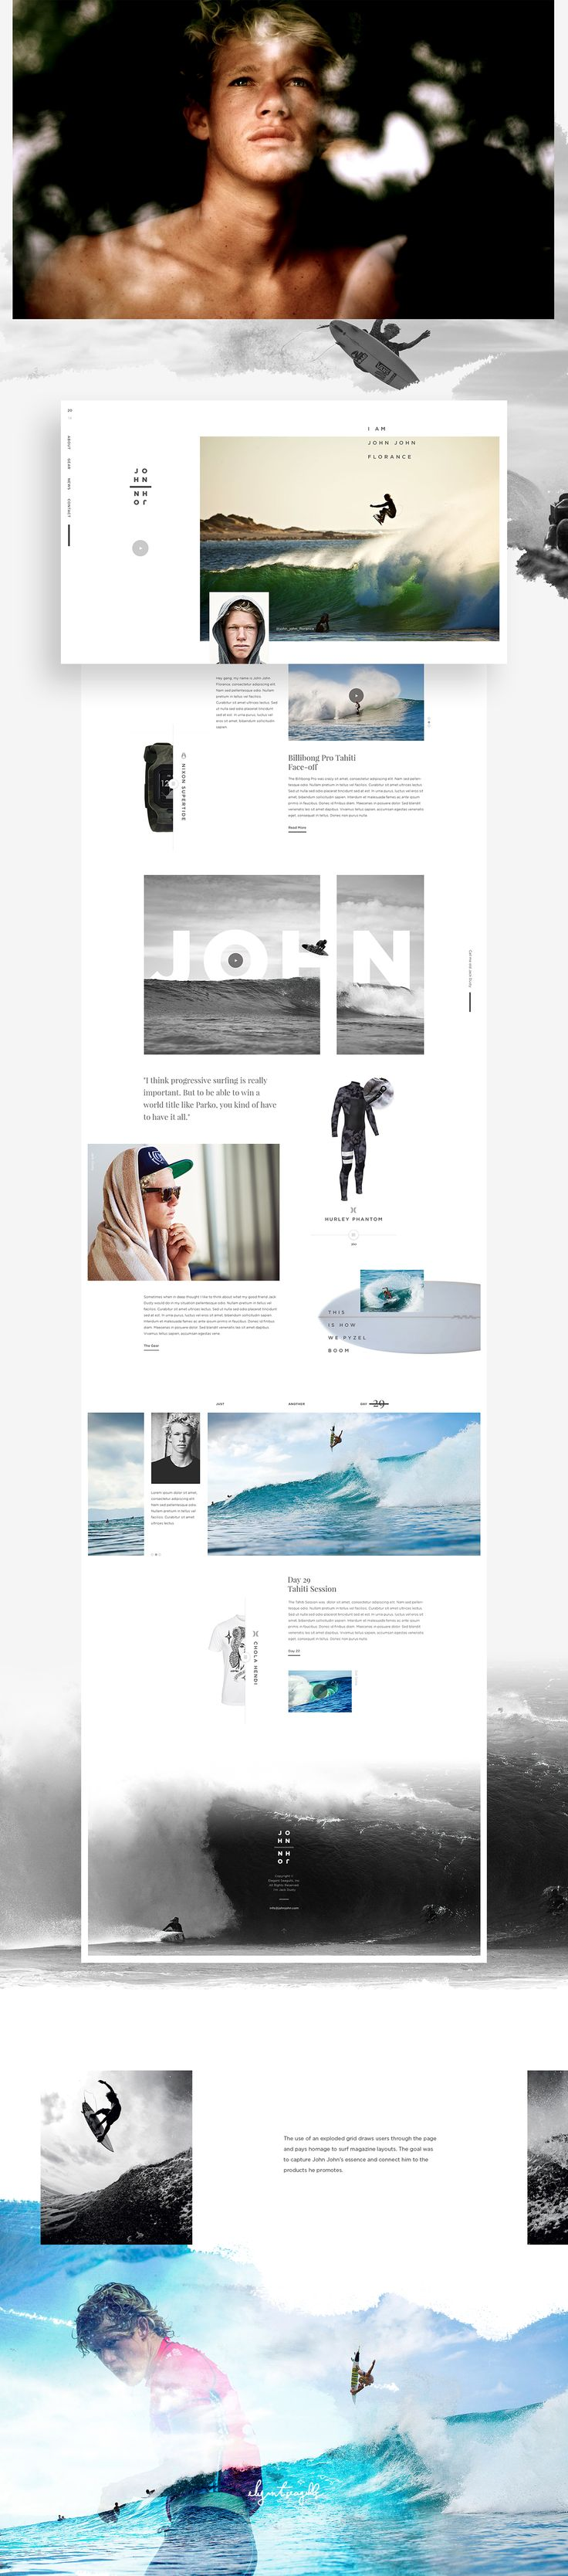 I was checking Dribbble yesterday when I saw this web design project for the surfer John John Florence.